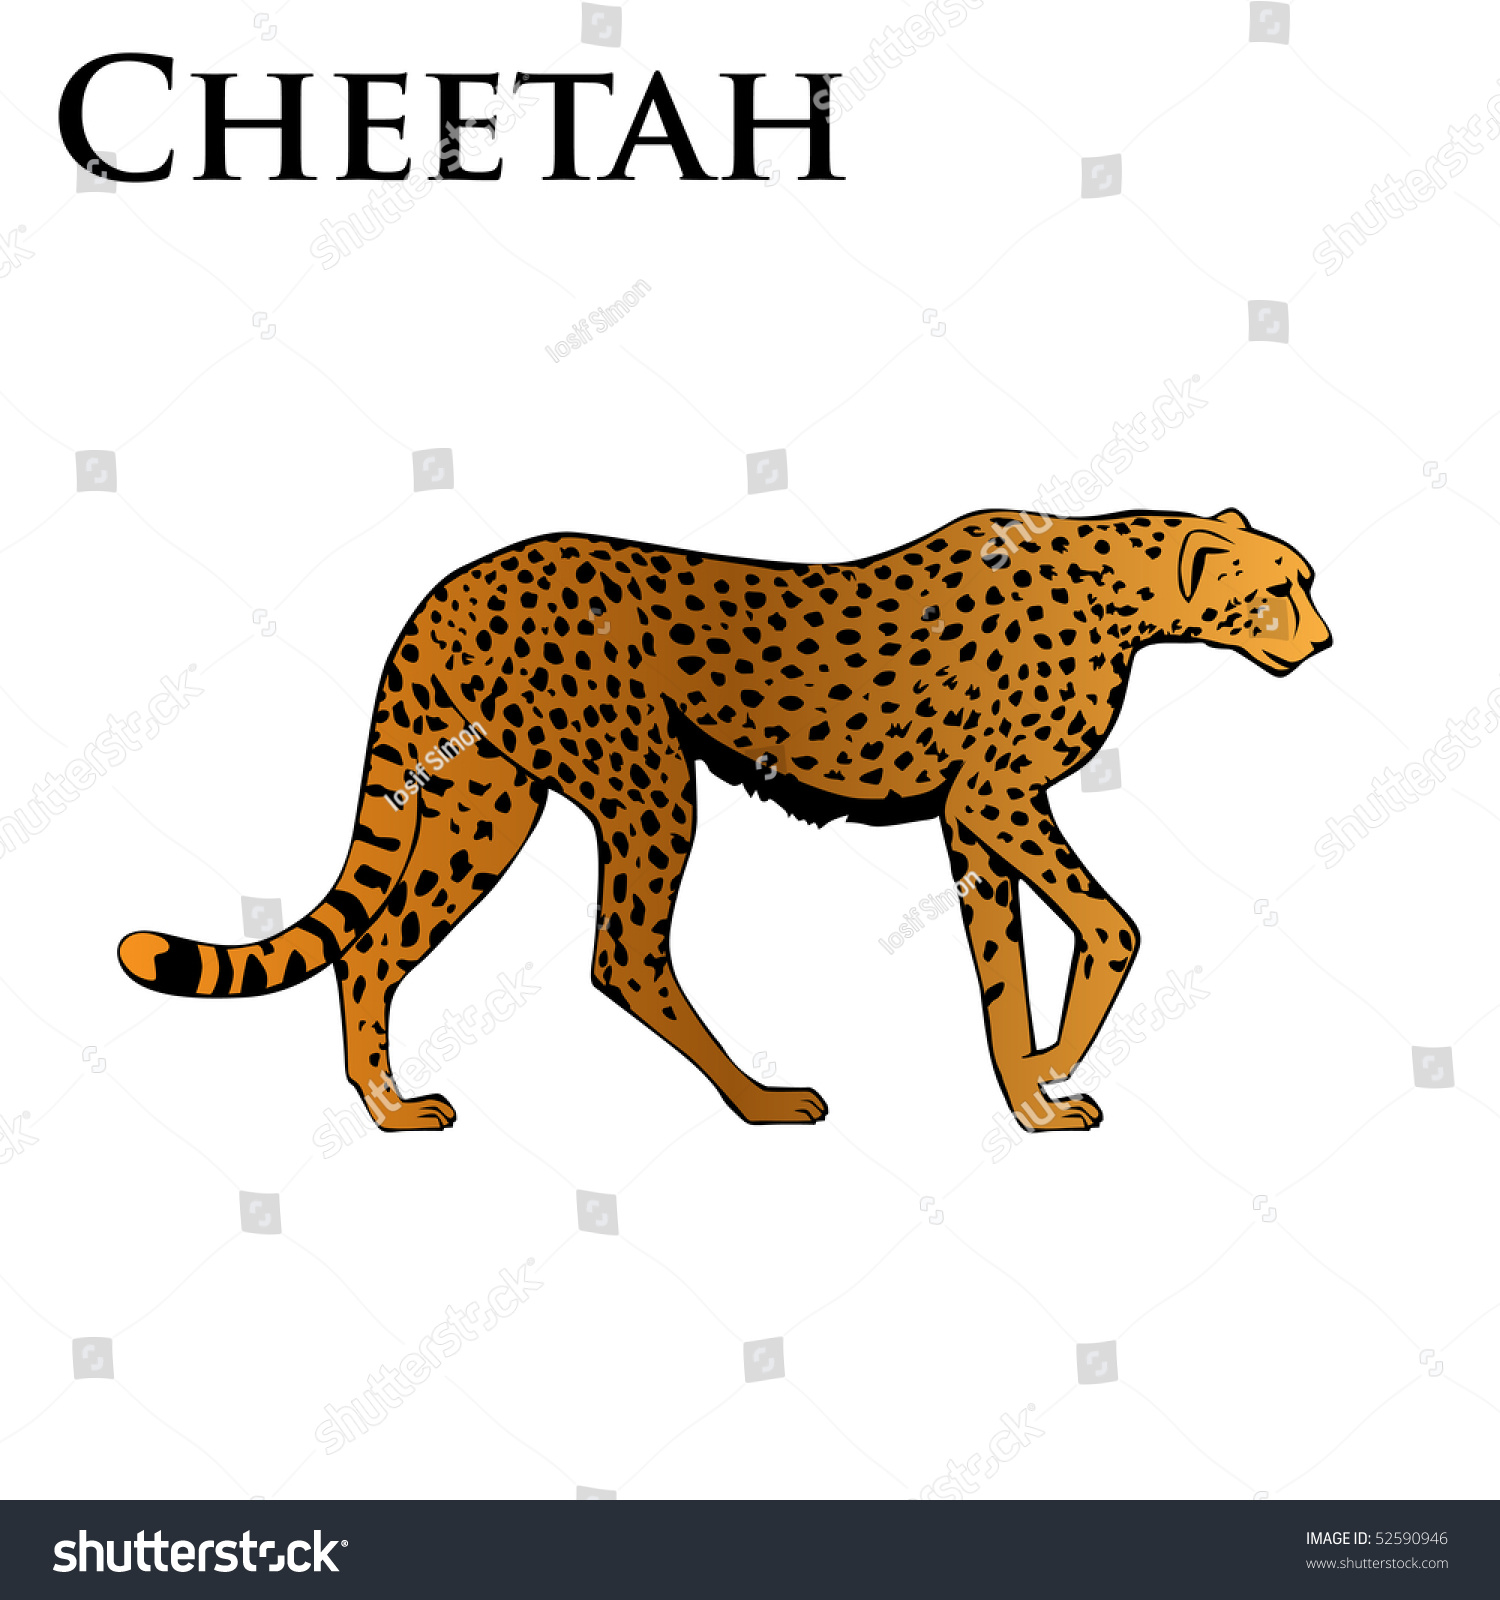 Cheetah drawings with color - photo#18